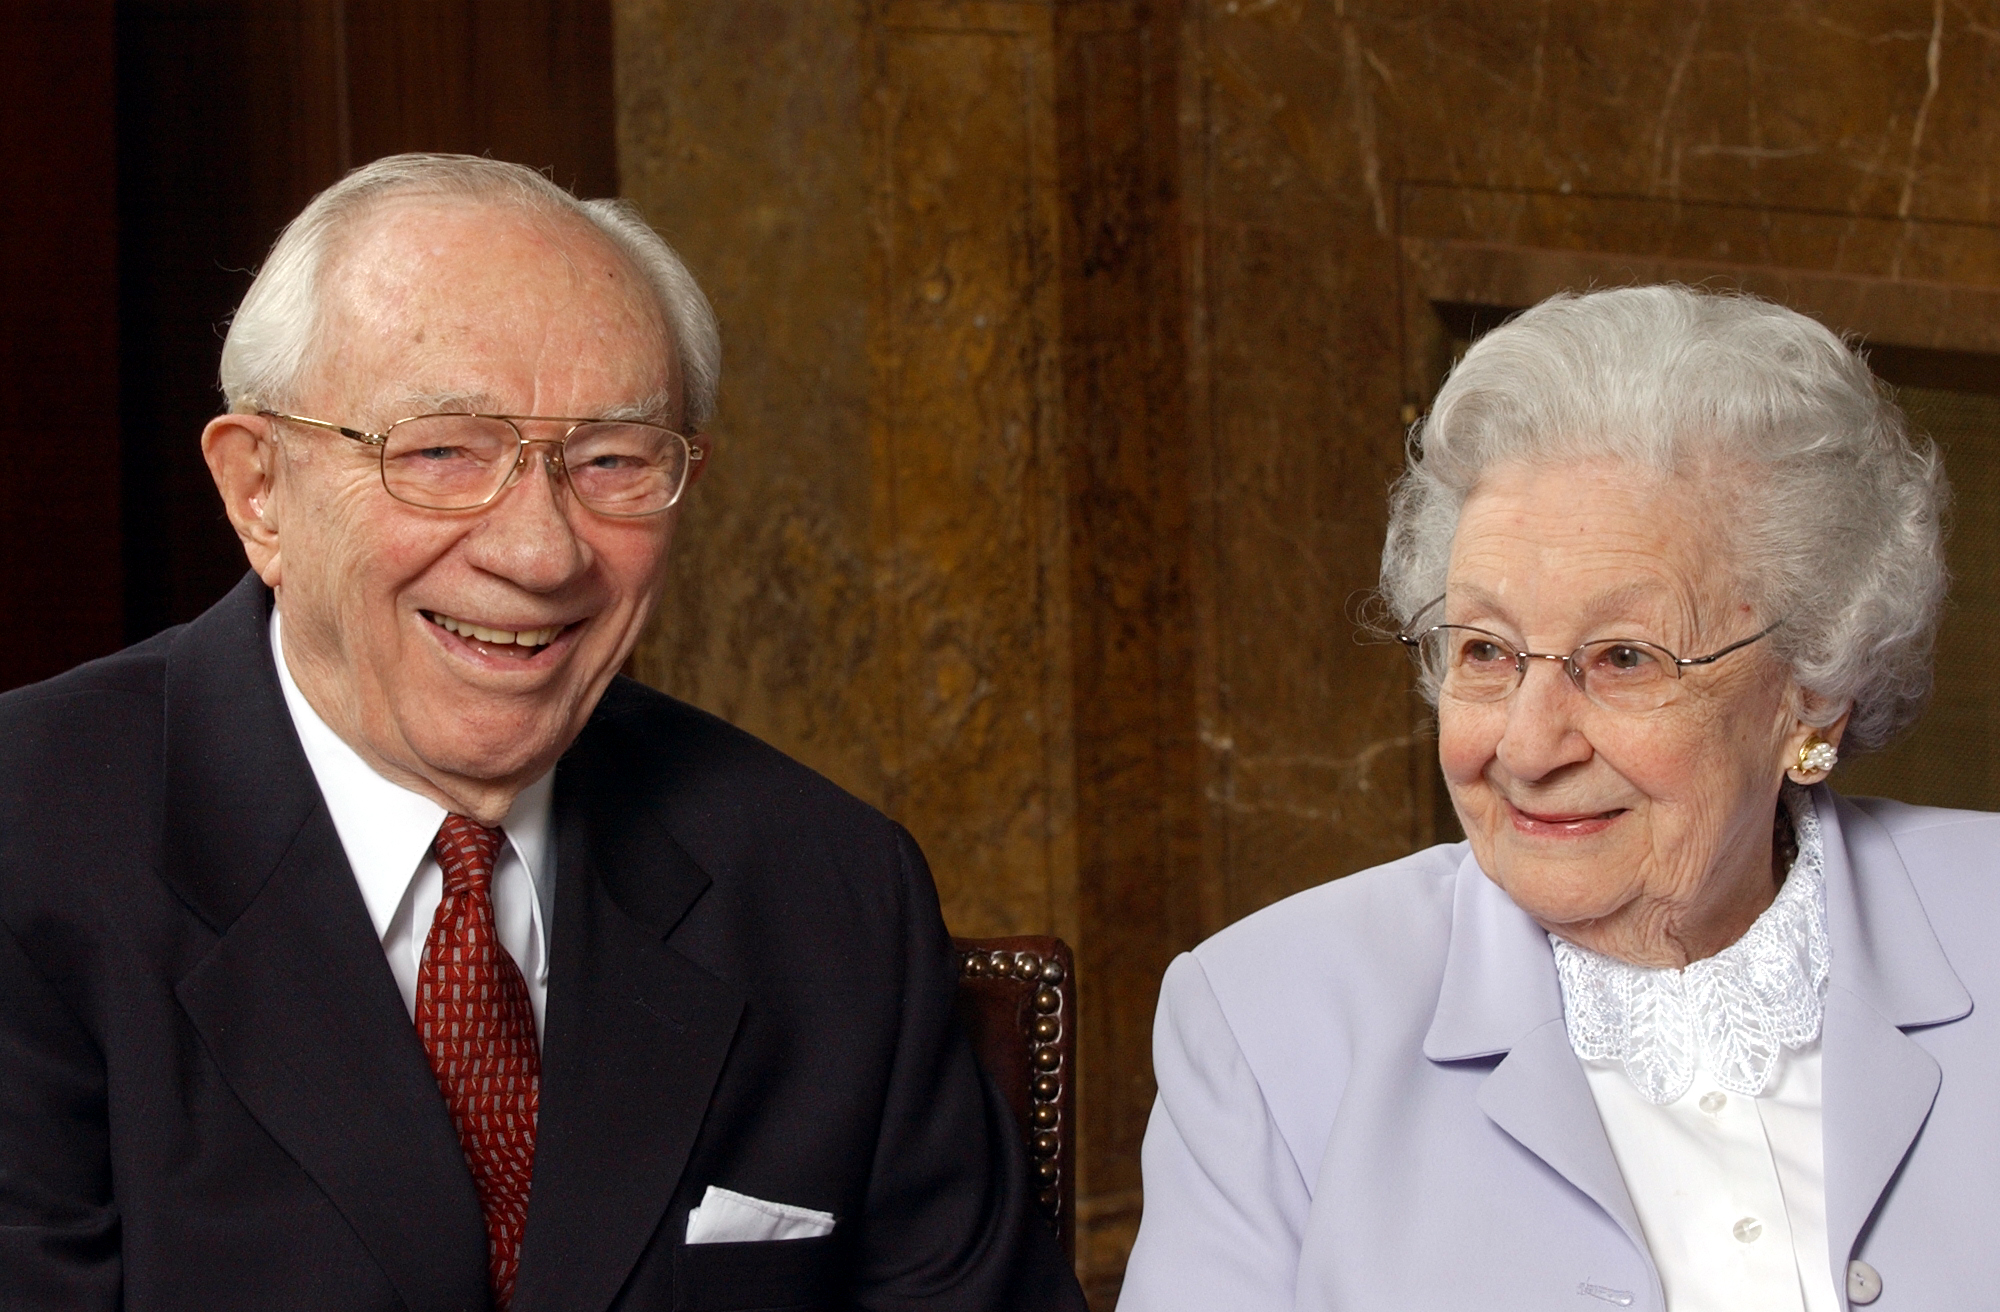 President Gordon B. and Marjorie Hinckley laugh during media interview Mar 13th, 2003.